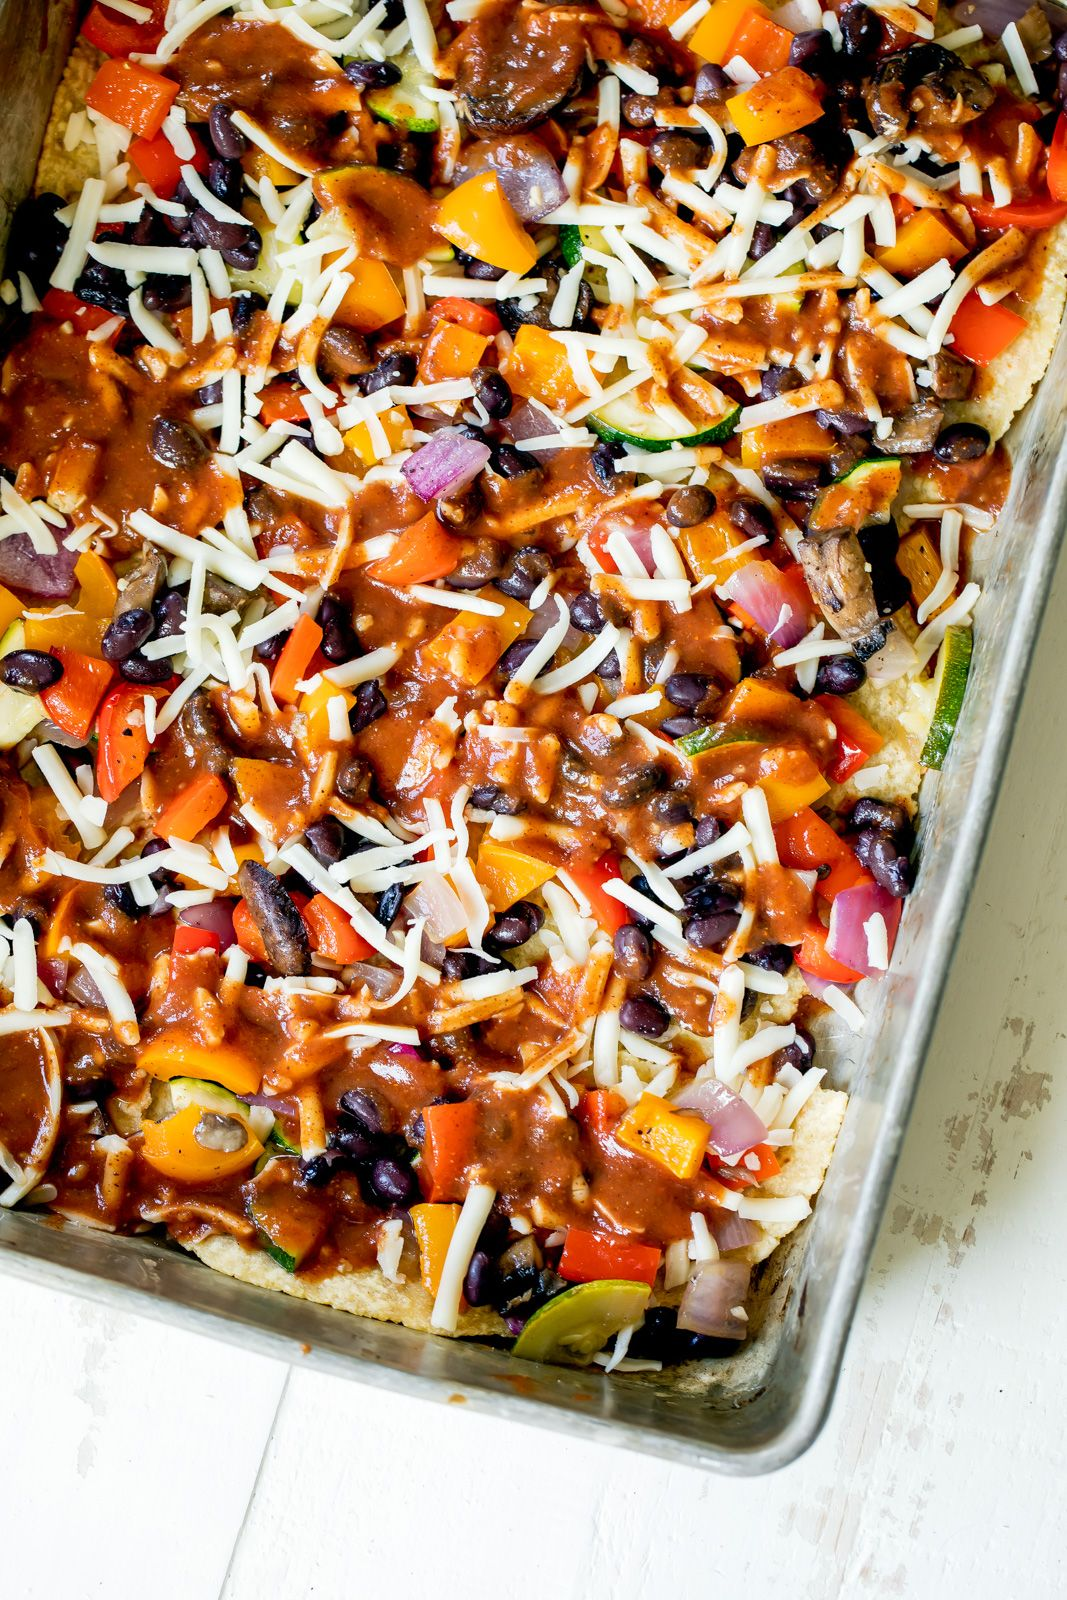 Chipotle Black Bean Roasted Veggie Enchilada Casserole Layers of veggies snuggled between black beans, tortillas, a homemade chipotle enchilada sauce and cheese - best & easiest vegetarian enchilada casserole!